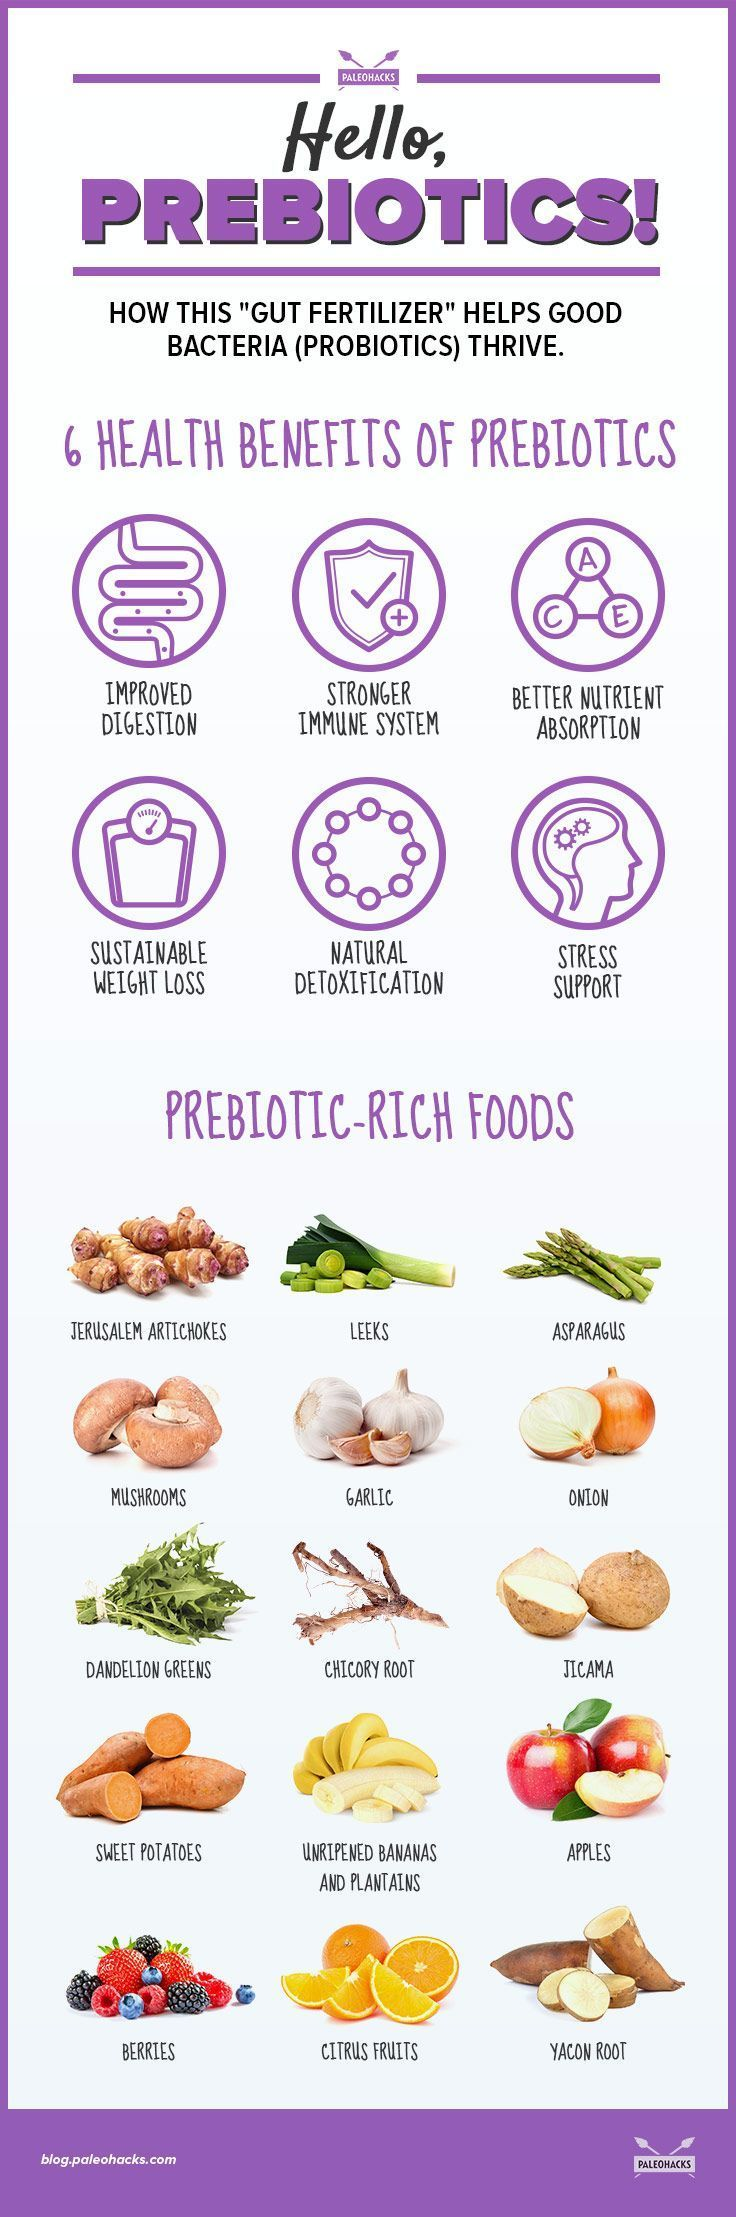 Don't forget to feed the good bacteria in your gut! For the full article on prebiotics, visit us here: http://paleo.co/prebioticsbenefits